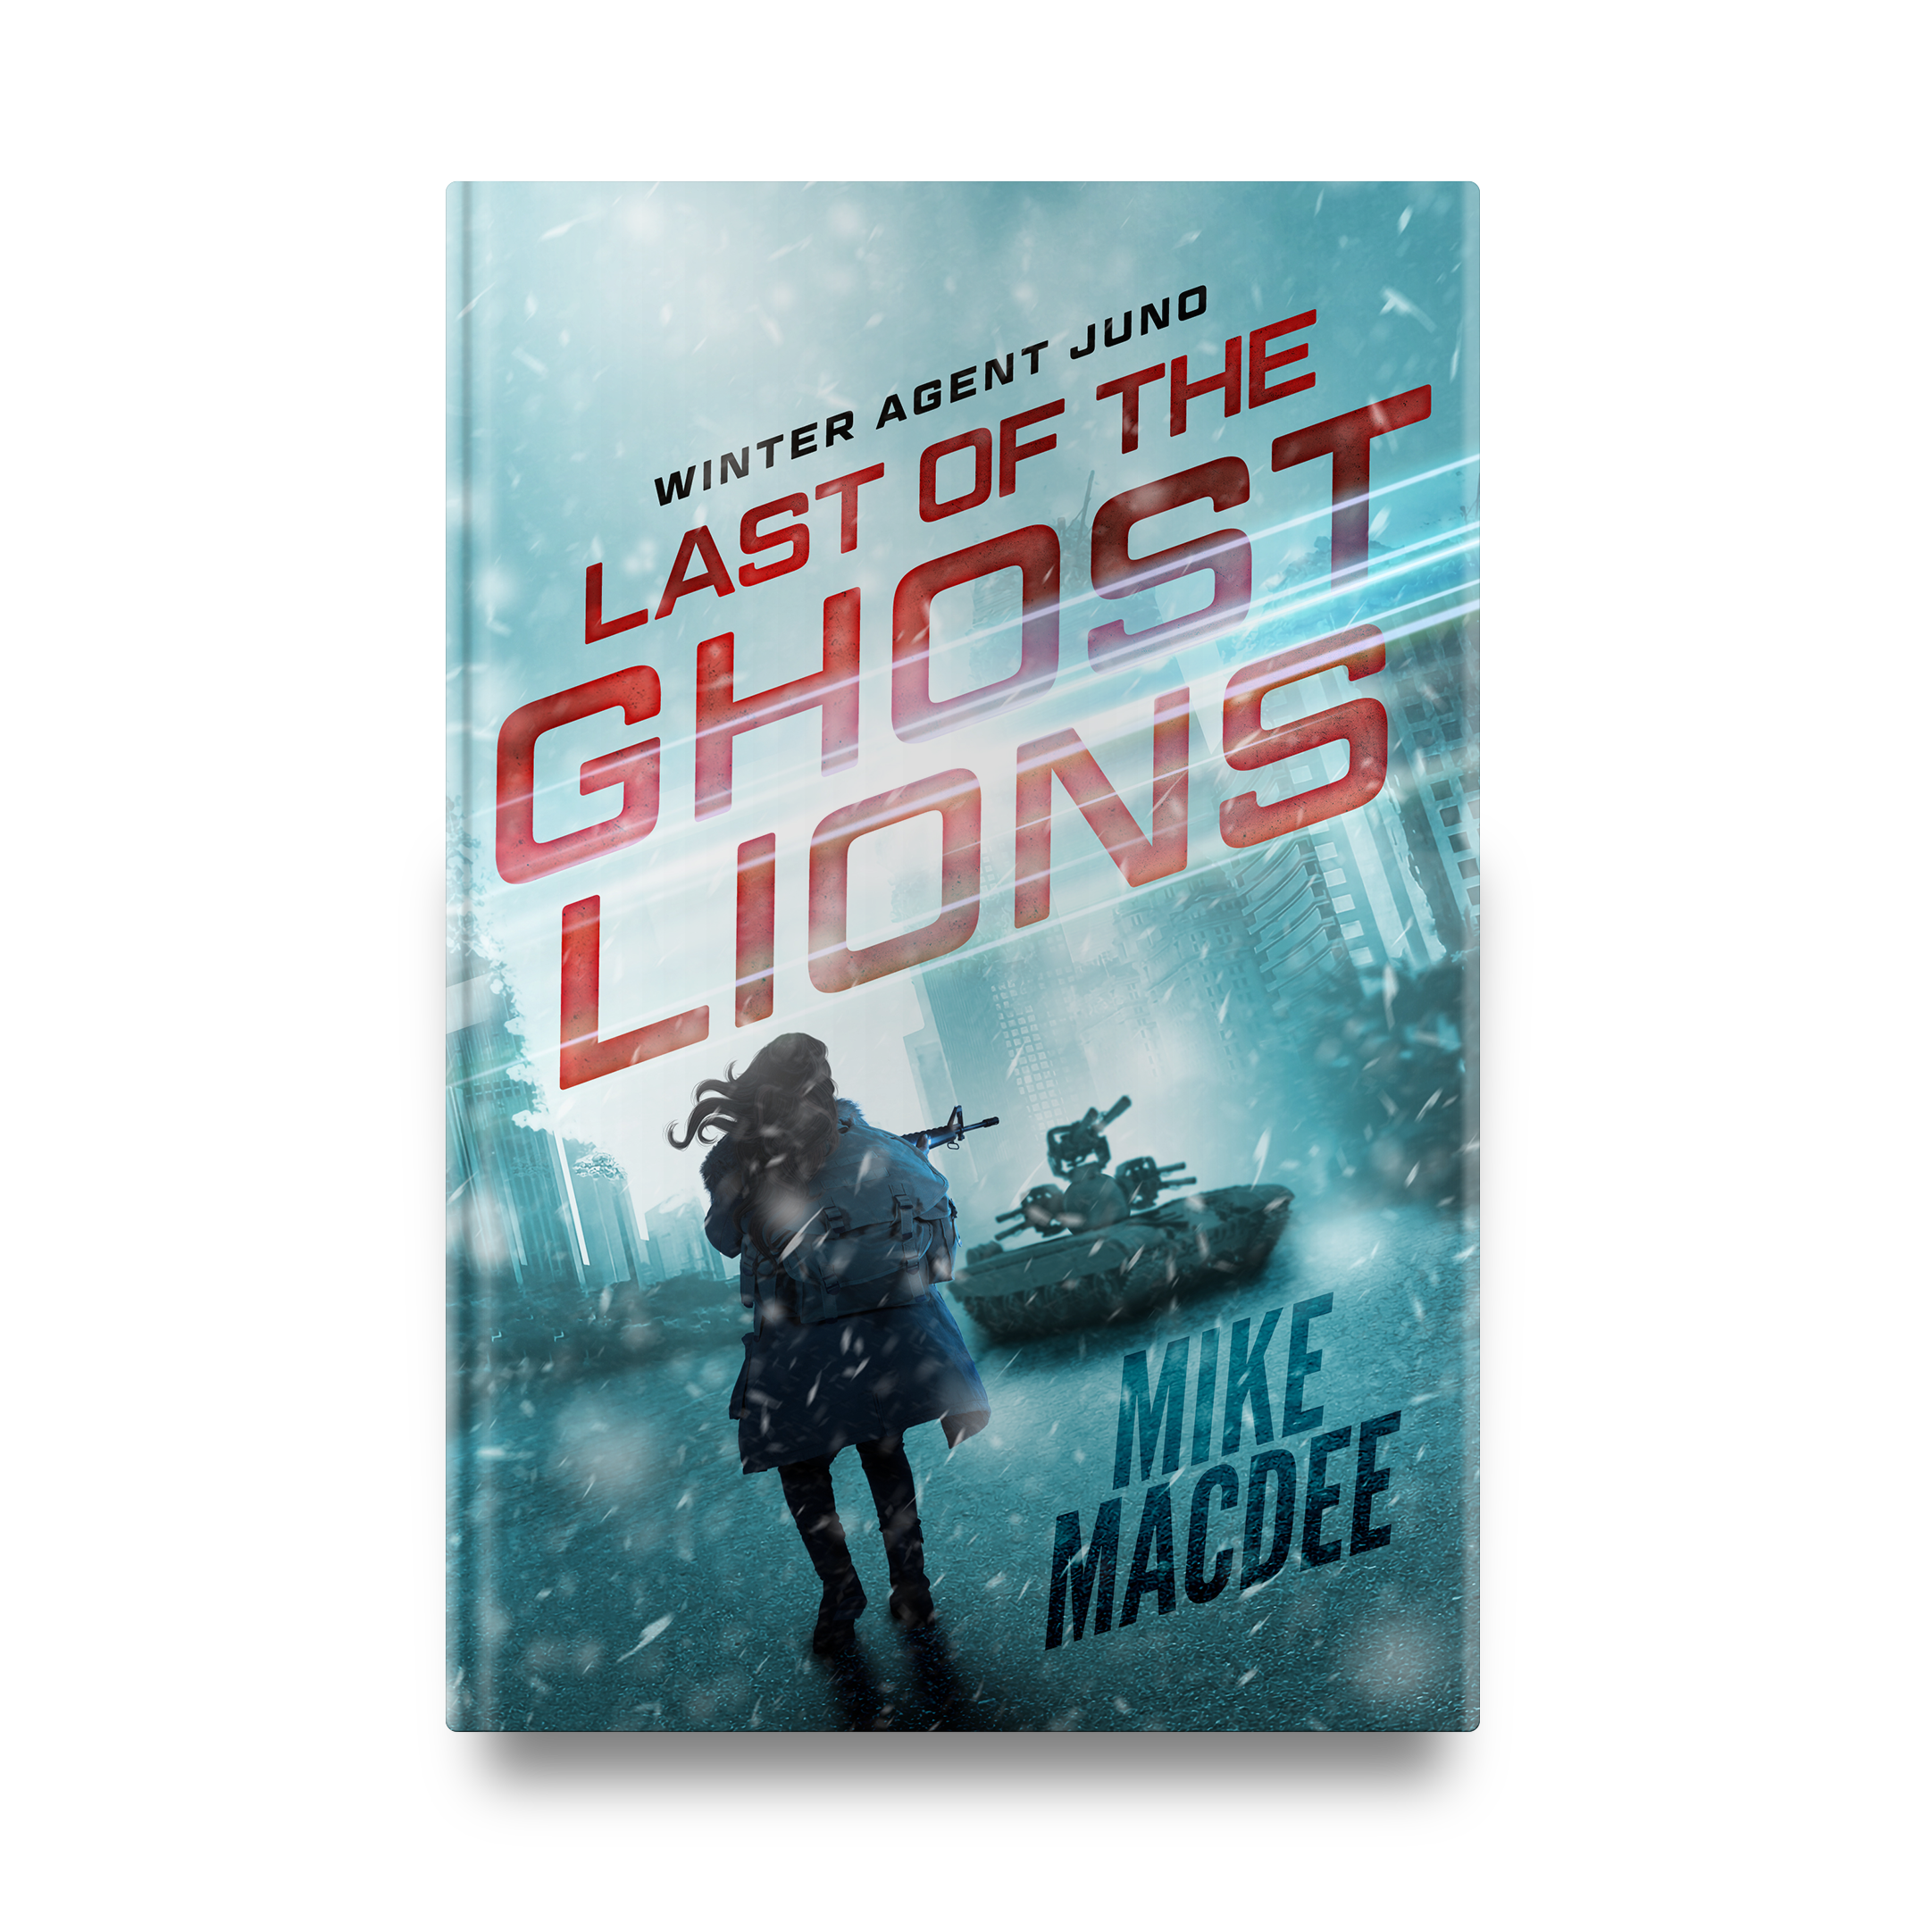 Mike MacDee's Last of the Ghost Lions || Designed by TheThatchery.com